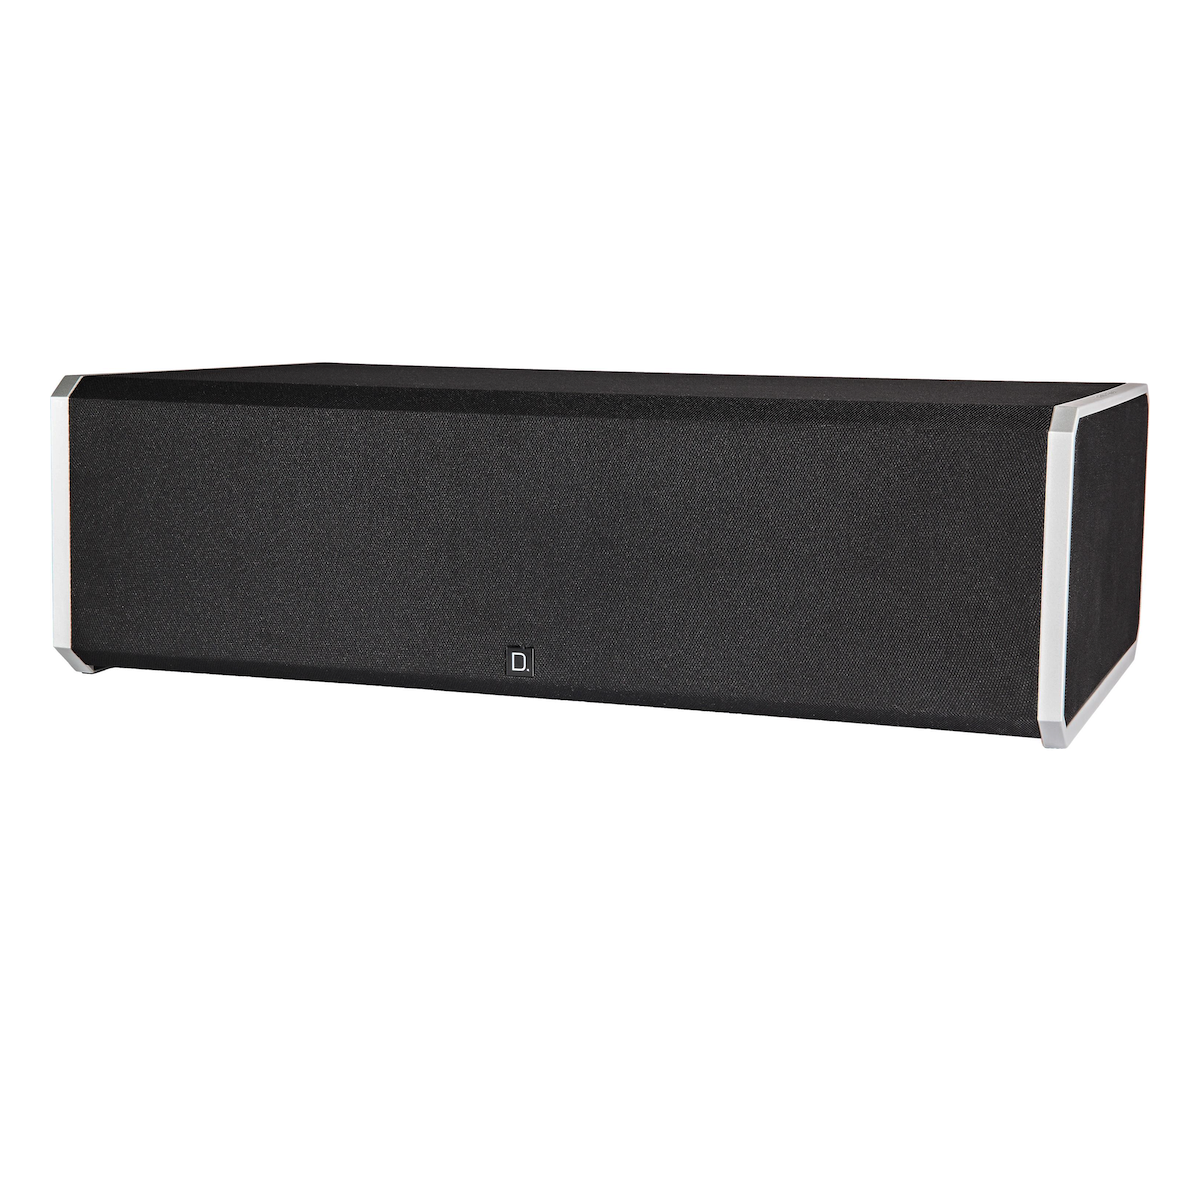 Definitive Technology CS9080 - Centre Channel Speaker - AVStore